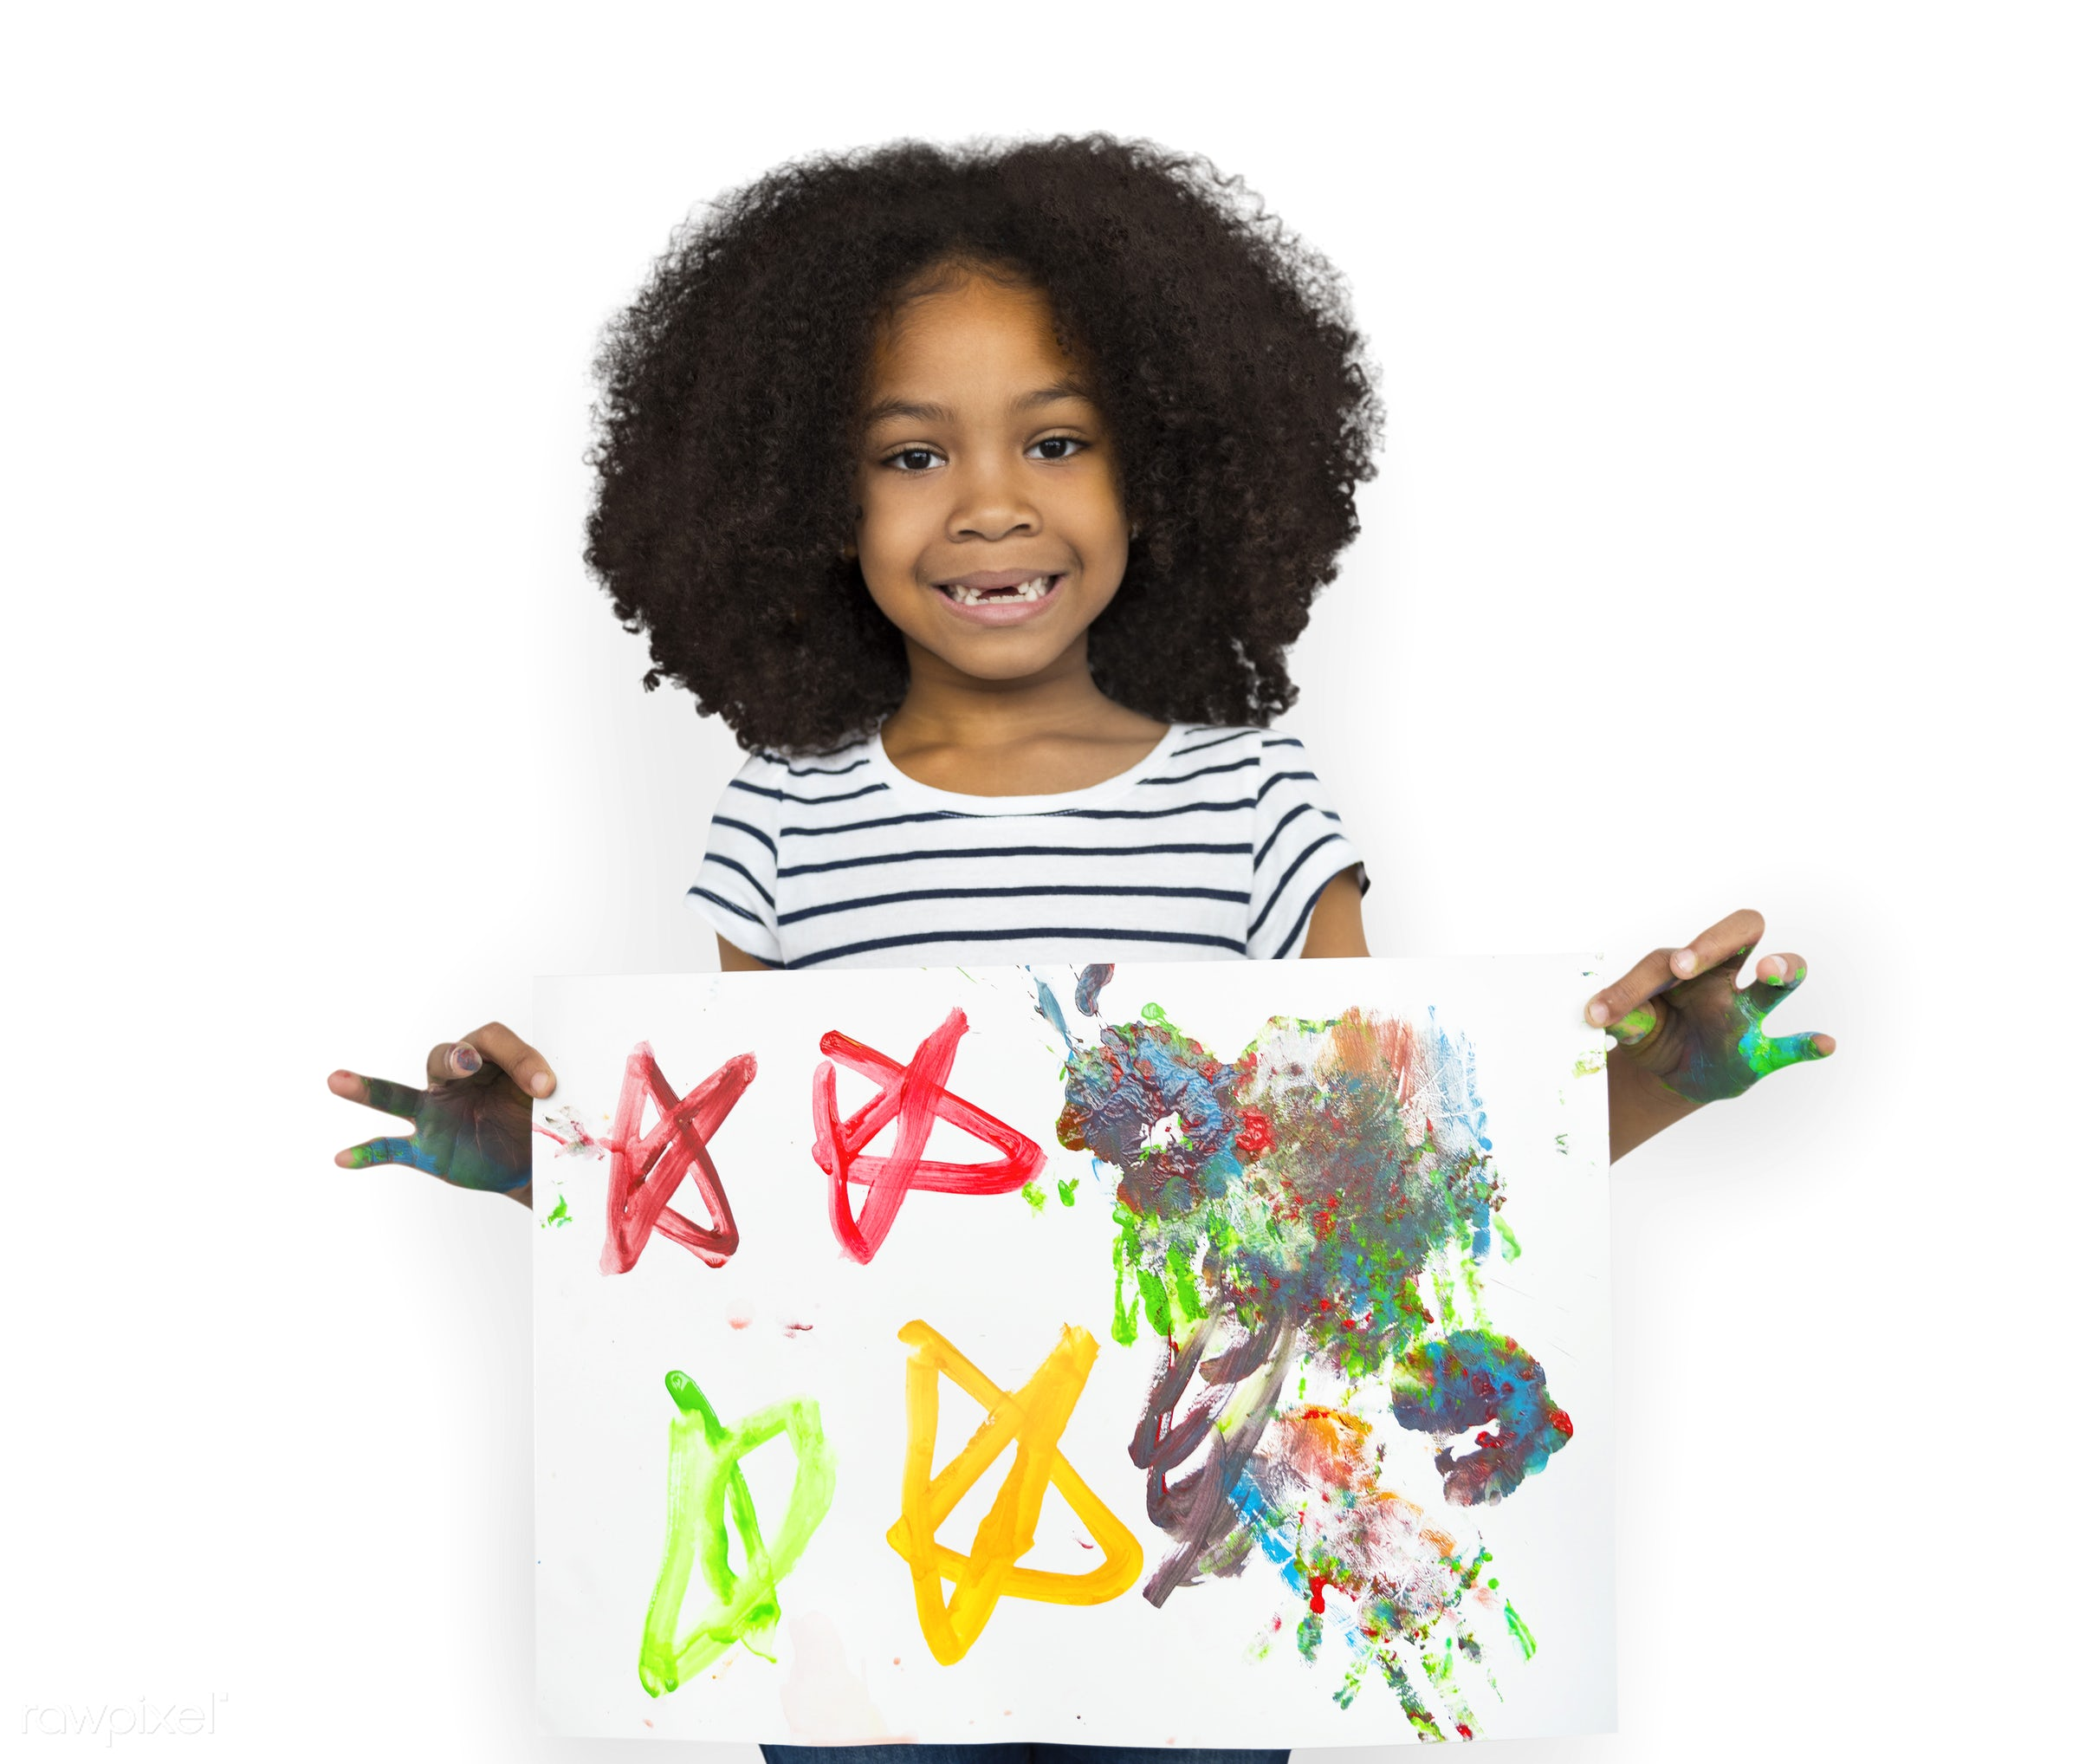 expression, studio, person, isolated on white, little, cute, painted hands, people, drawing, draw, child, girl, happy,...